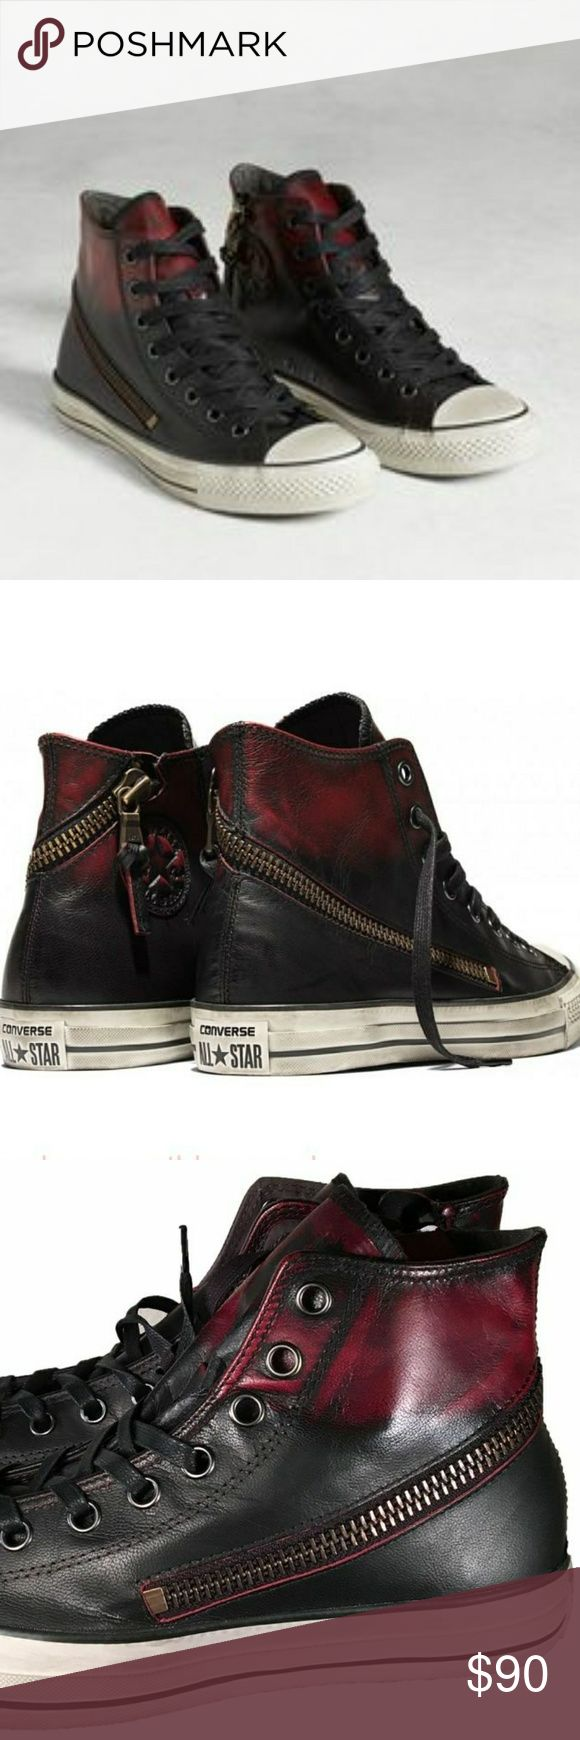 $100 off! Converse x John Varvatos Chuck Zip Hi Special Collab w/ John Varvatos New w/tags 100% Authentic  **please inquire for size first! Converse Shoes Sneakers